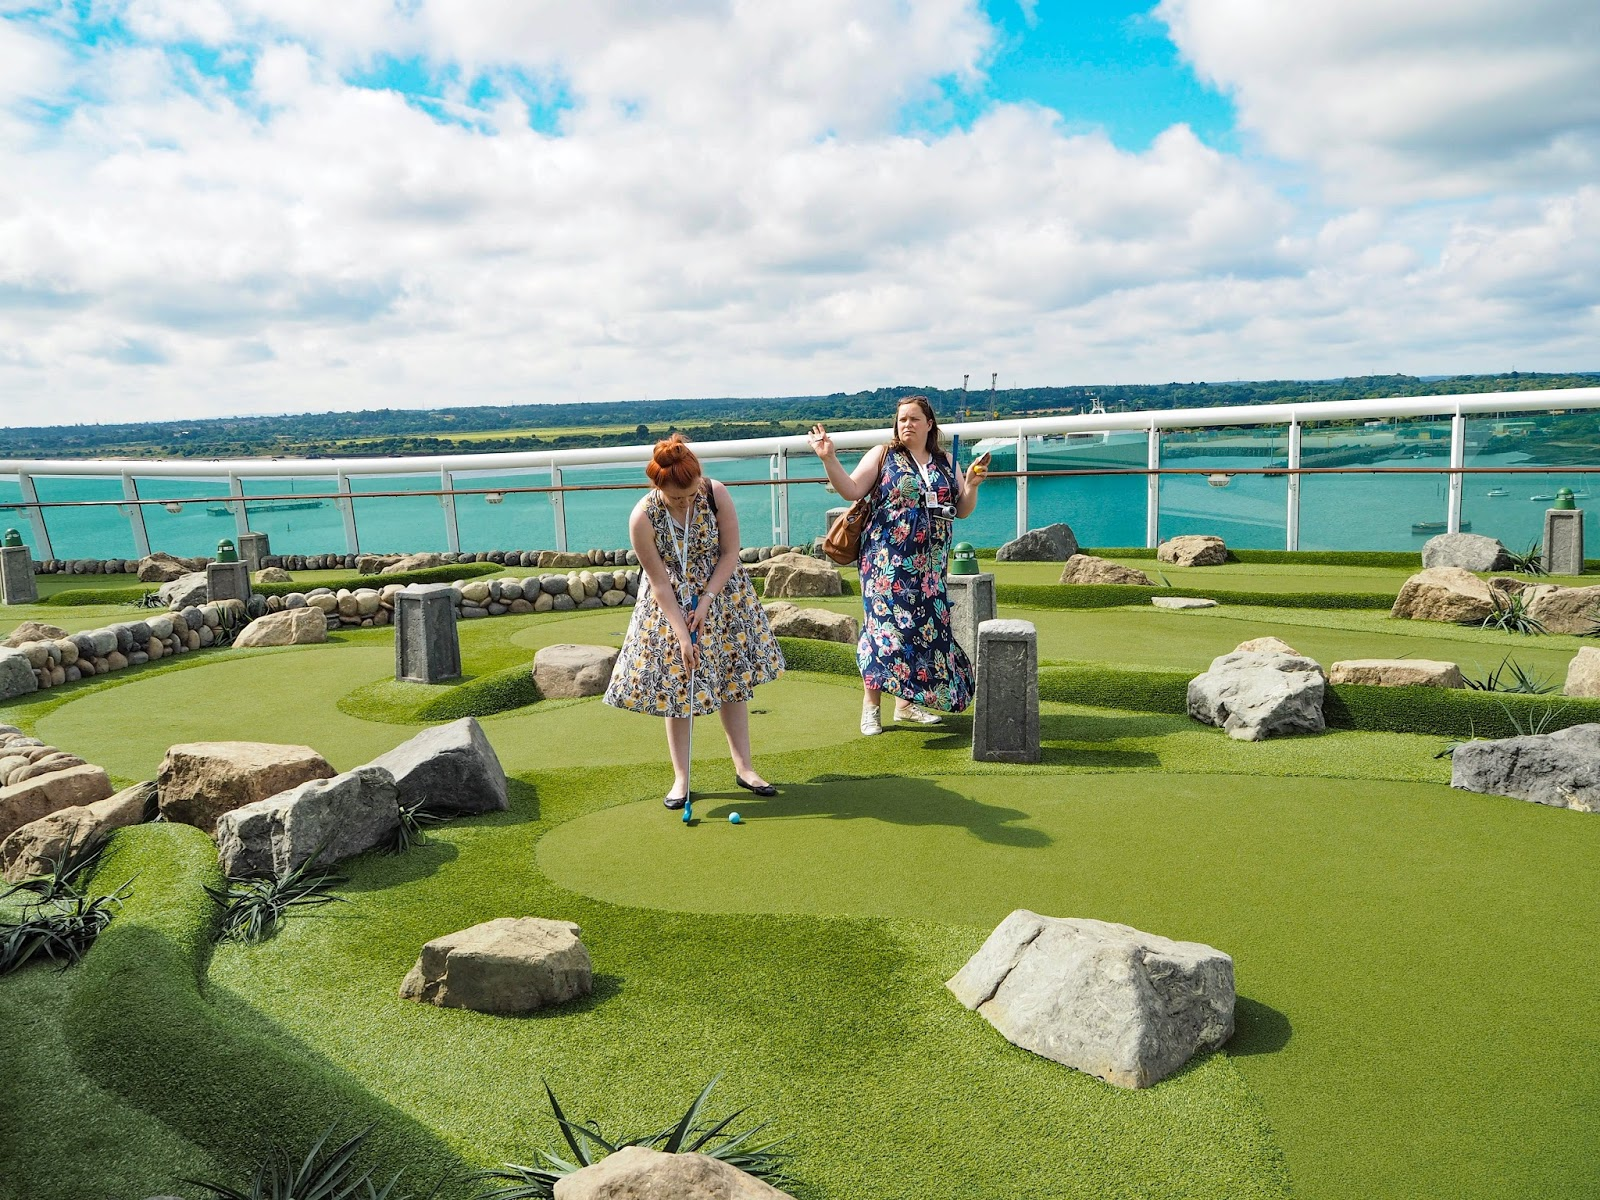 Mini golf on Royal Caribbean's Navigator of the Seas Cruise Ship